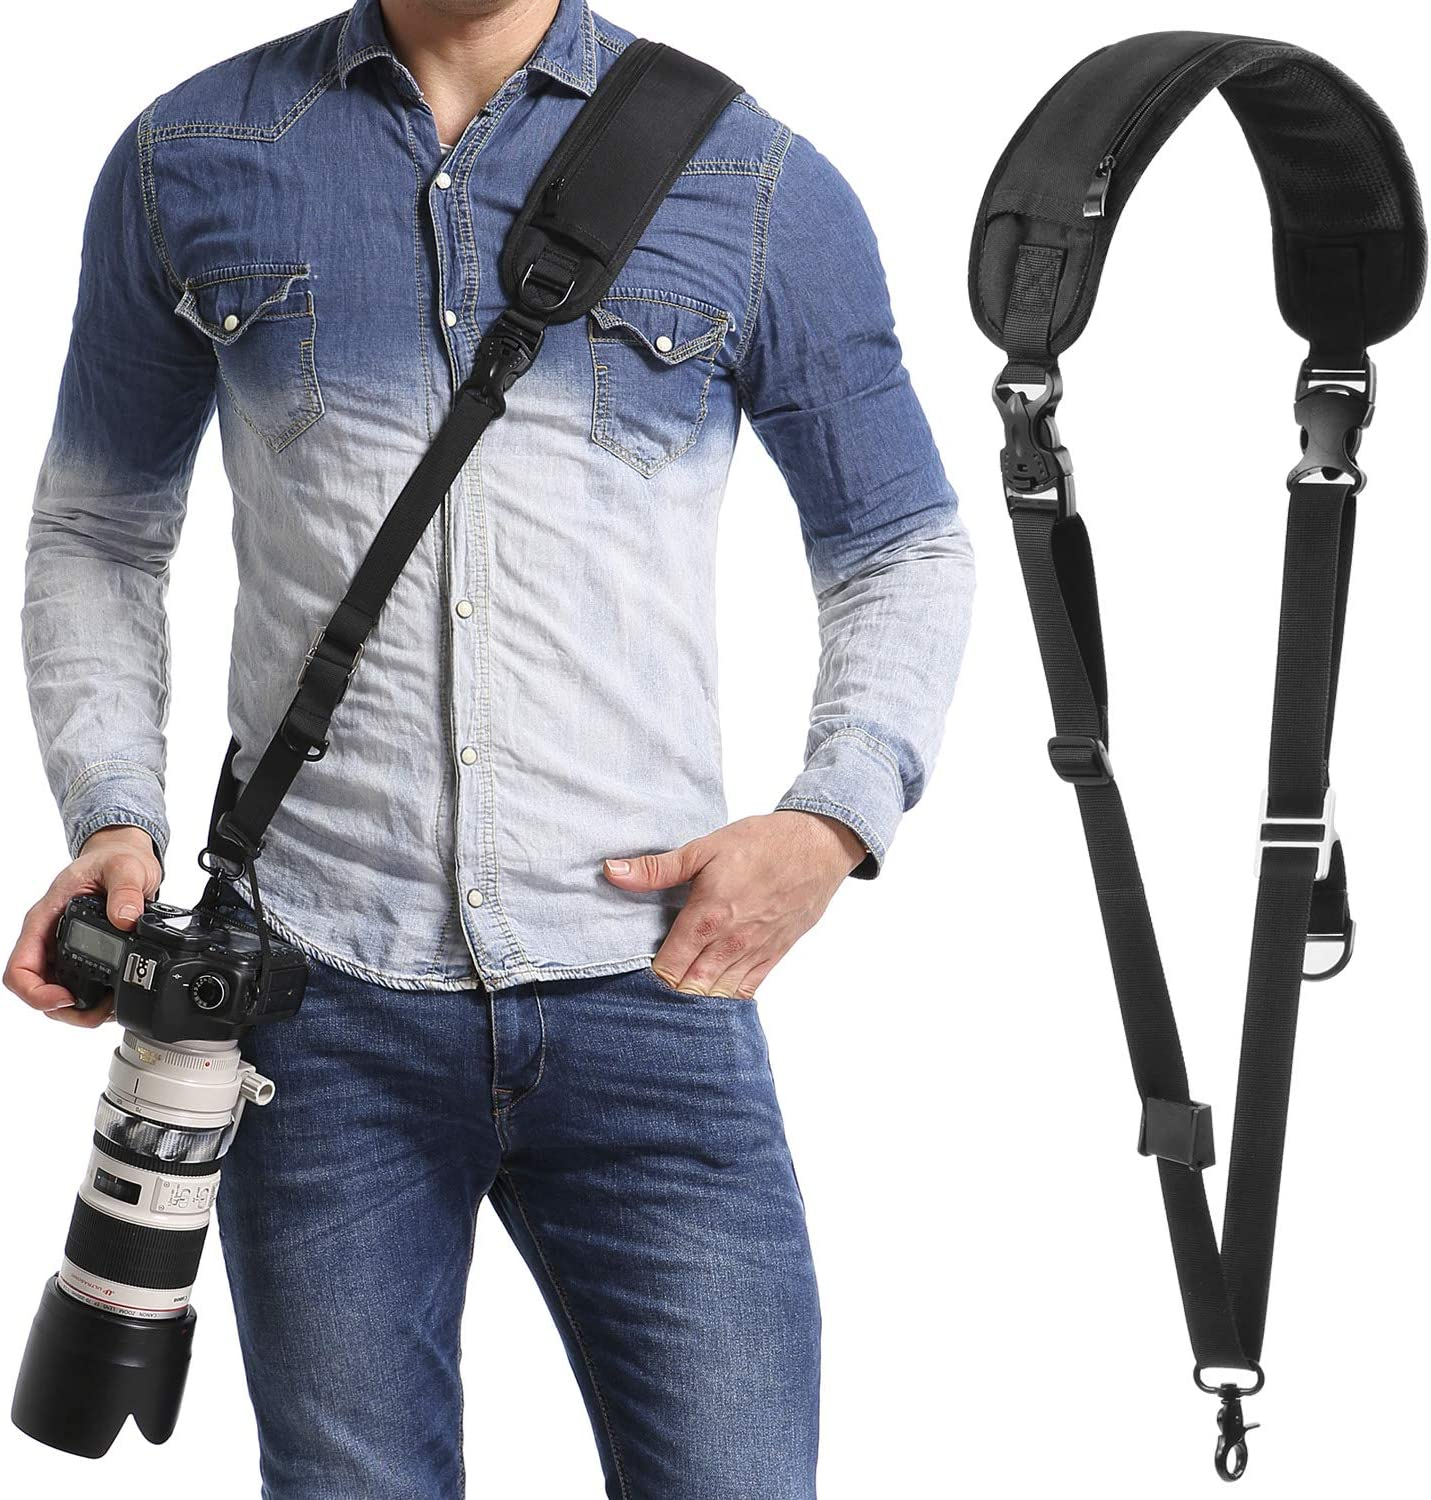 Camera Strap with Safety Tether Mounting Plate Anti-Slip Over Shoulder Camera Sling Strap Quick Release with Safety Tether,for DSLR SLR Camera Canon Nikon Sony Olympus Pentax, etc.